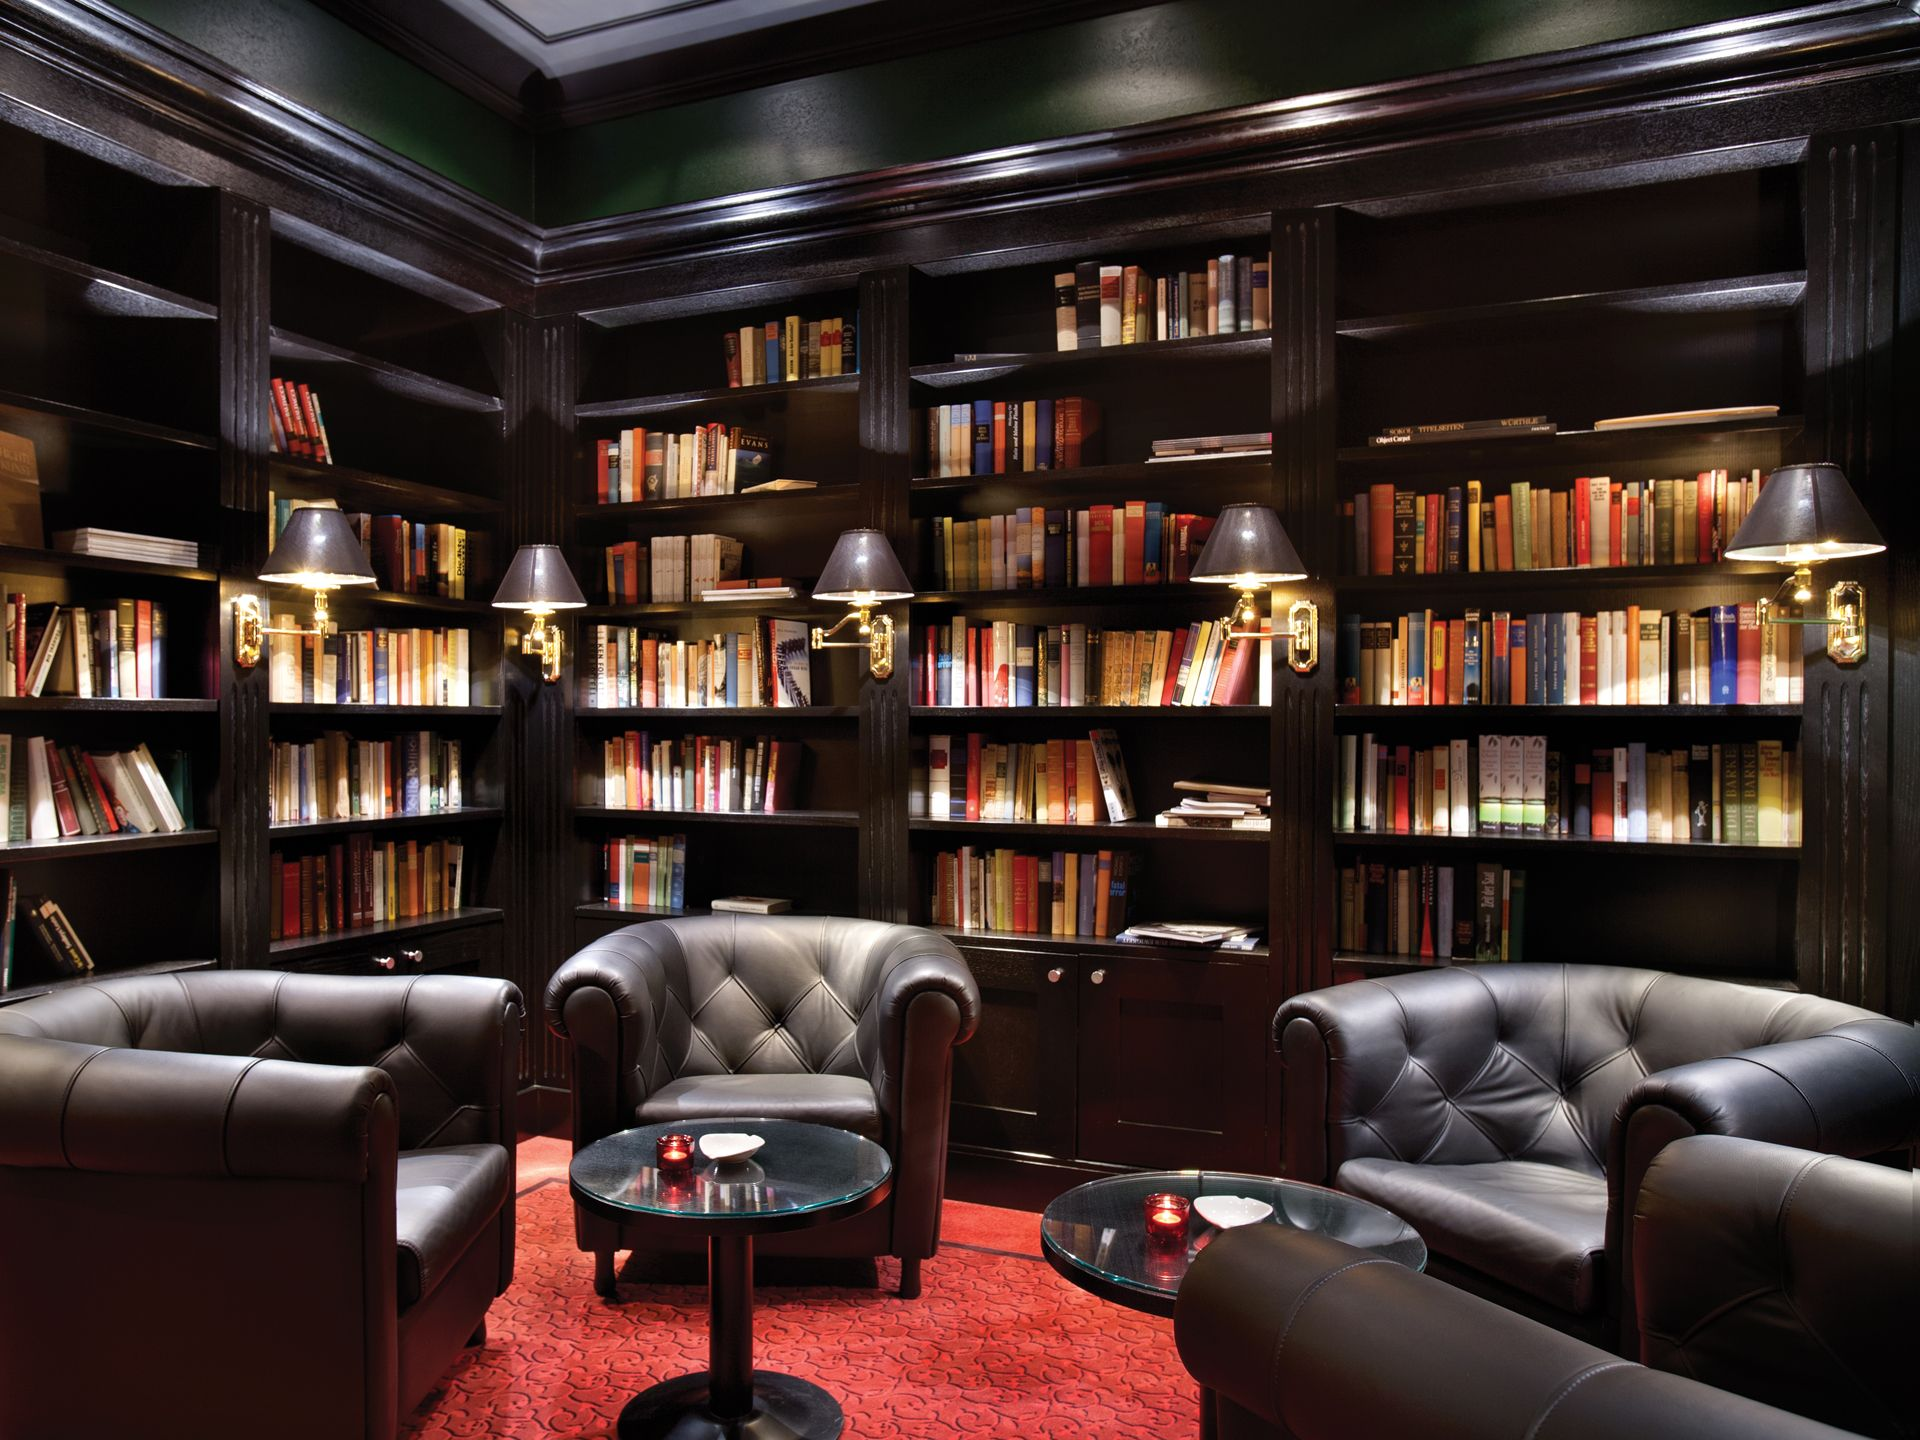 Cigar room hotel google search in 2018 pinterest room home and man cave - Kempinski head office geneva ...